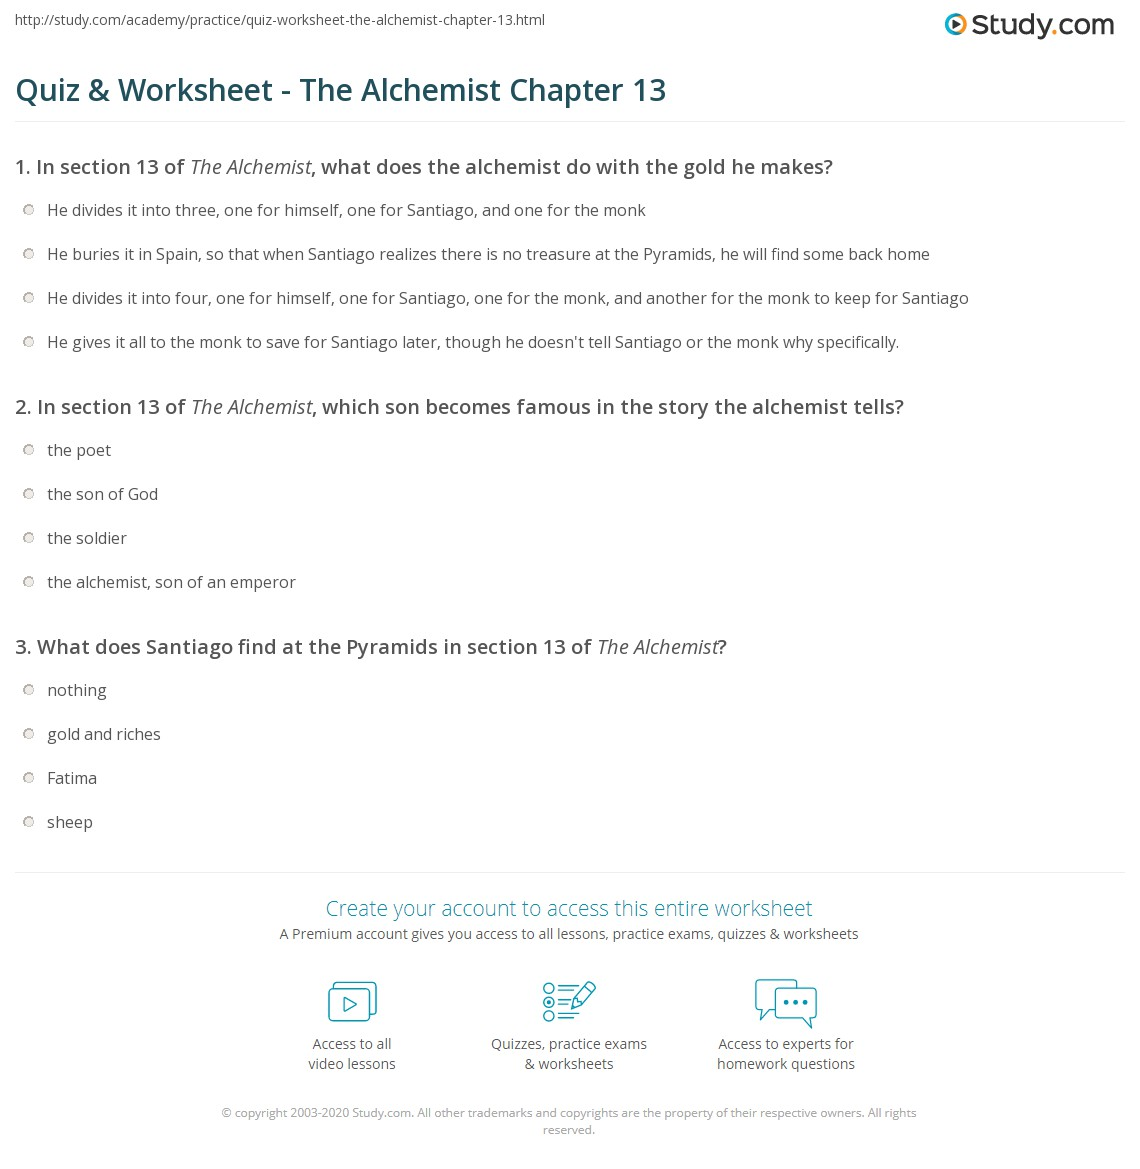 quiz worksheet the alchemist chapter 13 com in section 13 of the alchemist which son becomes famous in the story the alchemist tells